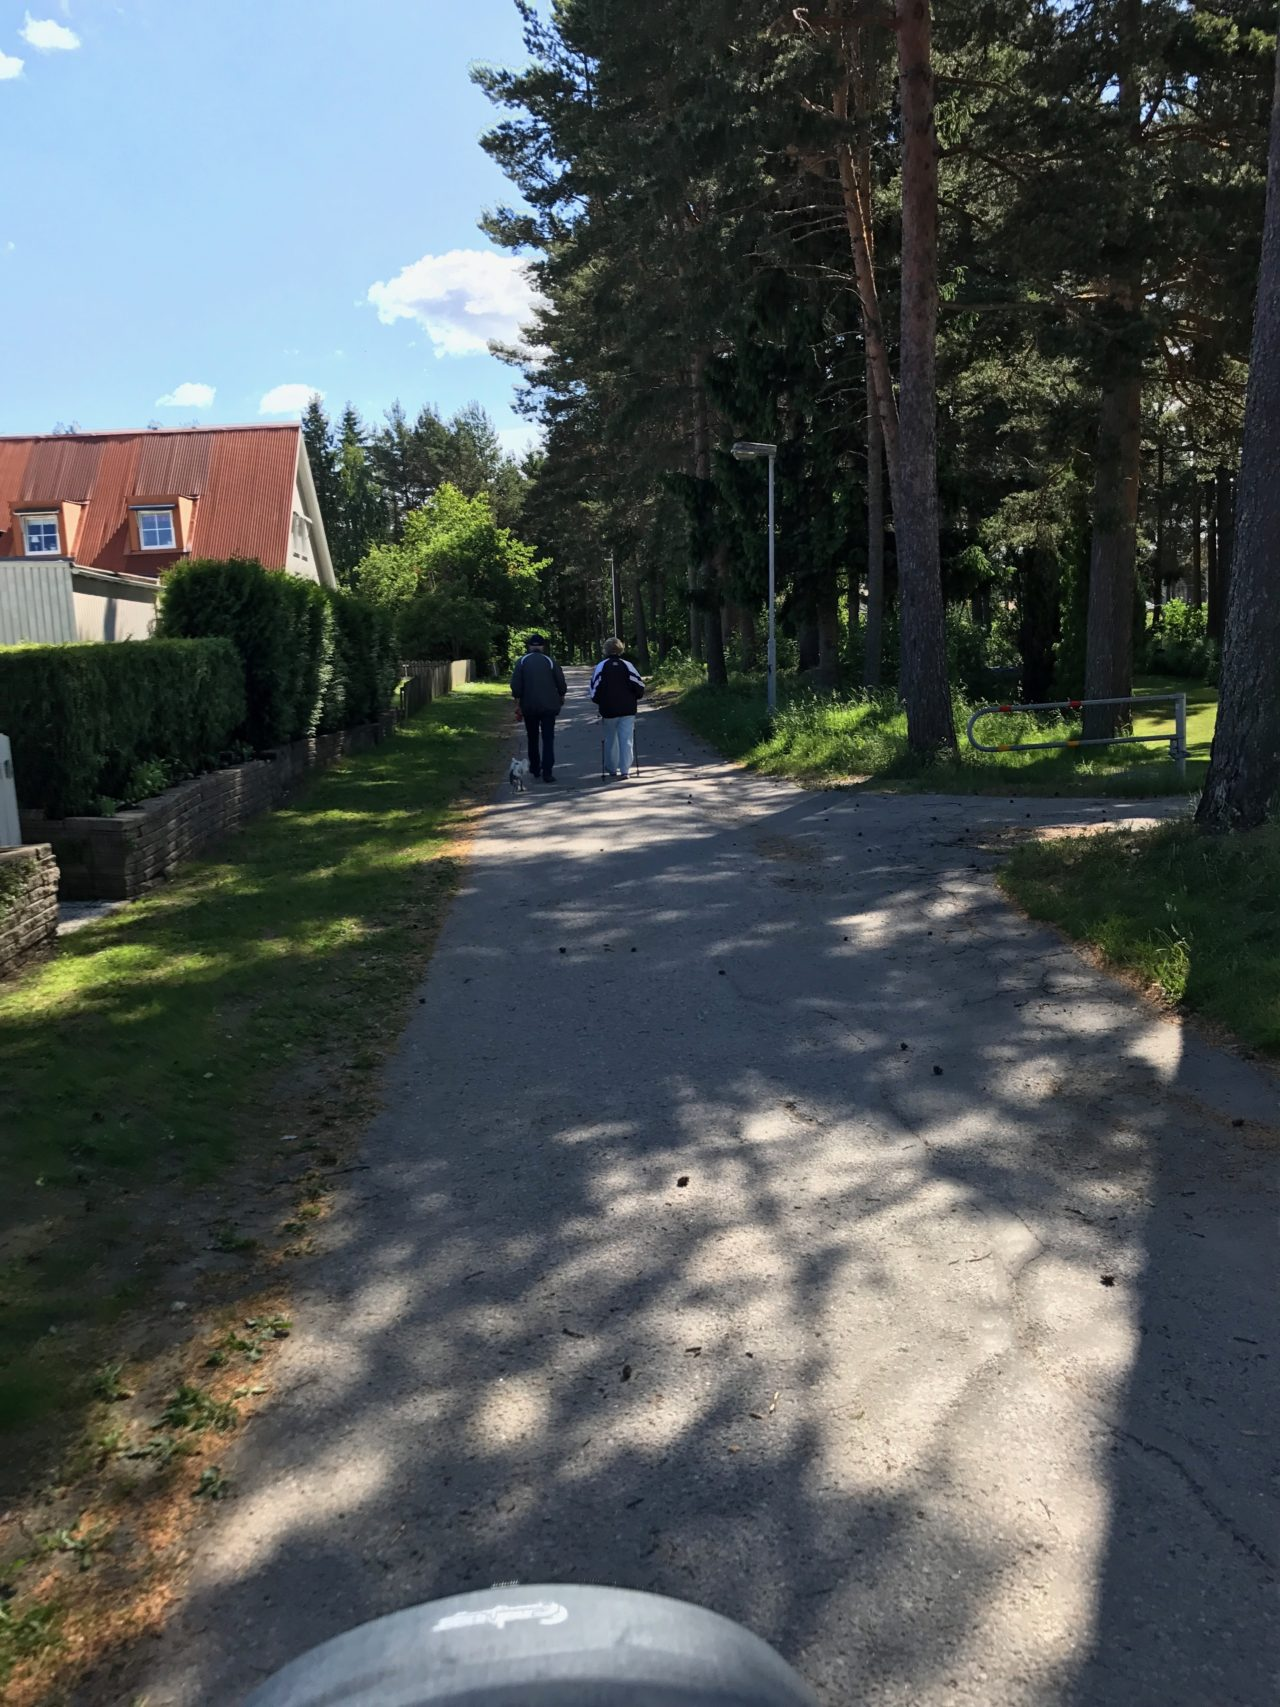 Old Couple Walking On A Asphalt Path With Trees And Houses